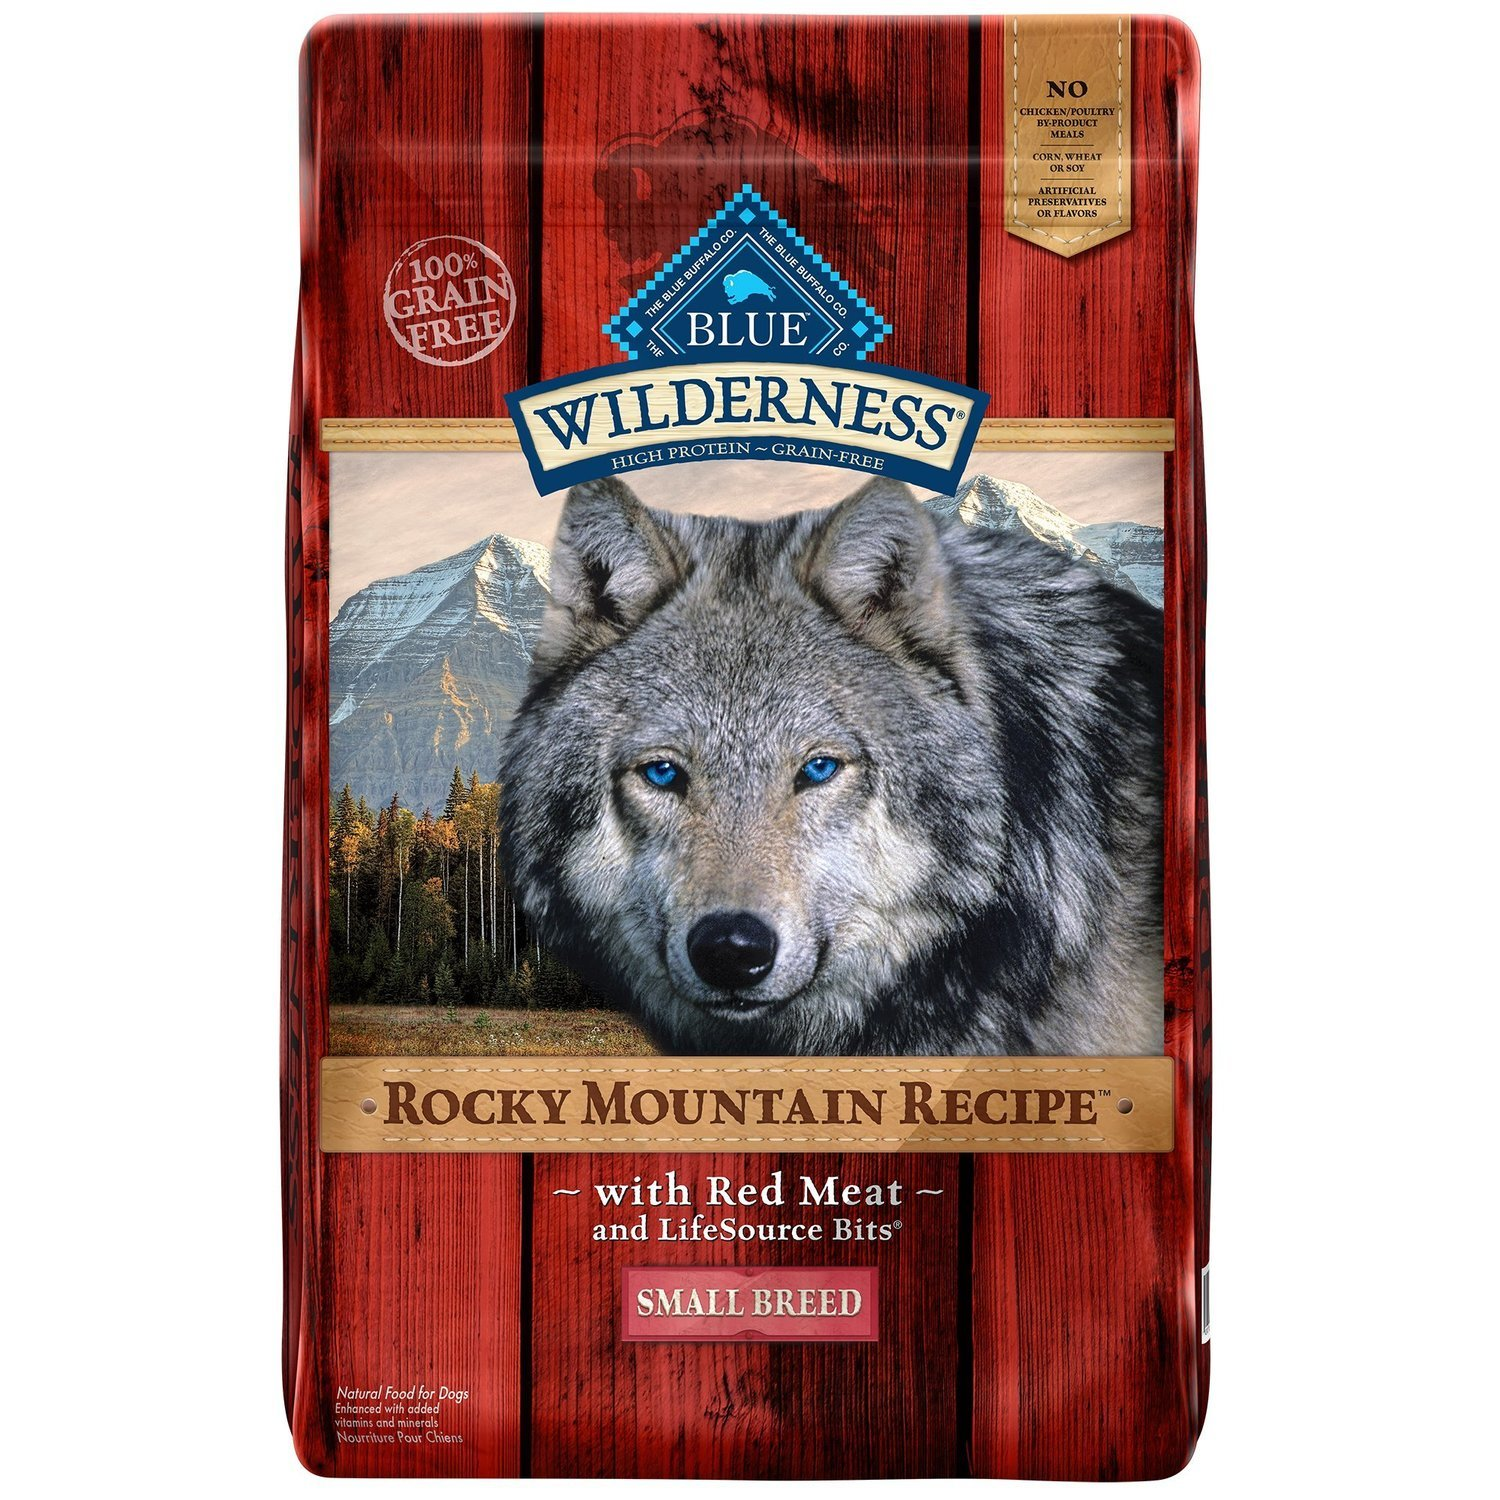 Blue Buffalo Wilderness Adult Rocky Mtn Recipes Red Meat Small Breed Grain Free Dog Food 10.25 lbs (10/18) (A.M2/M3)